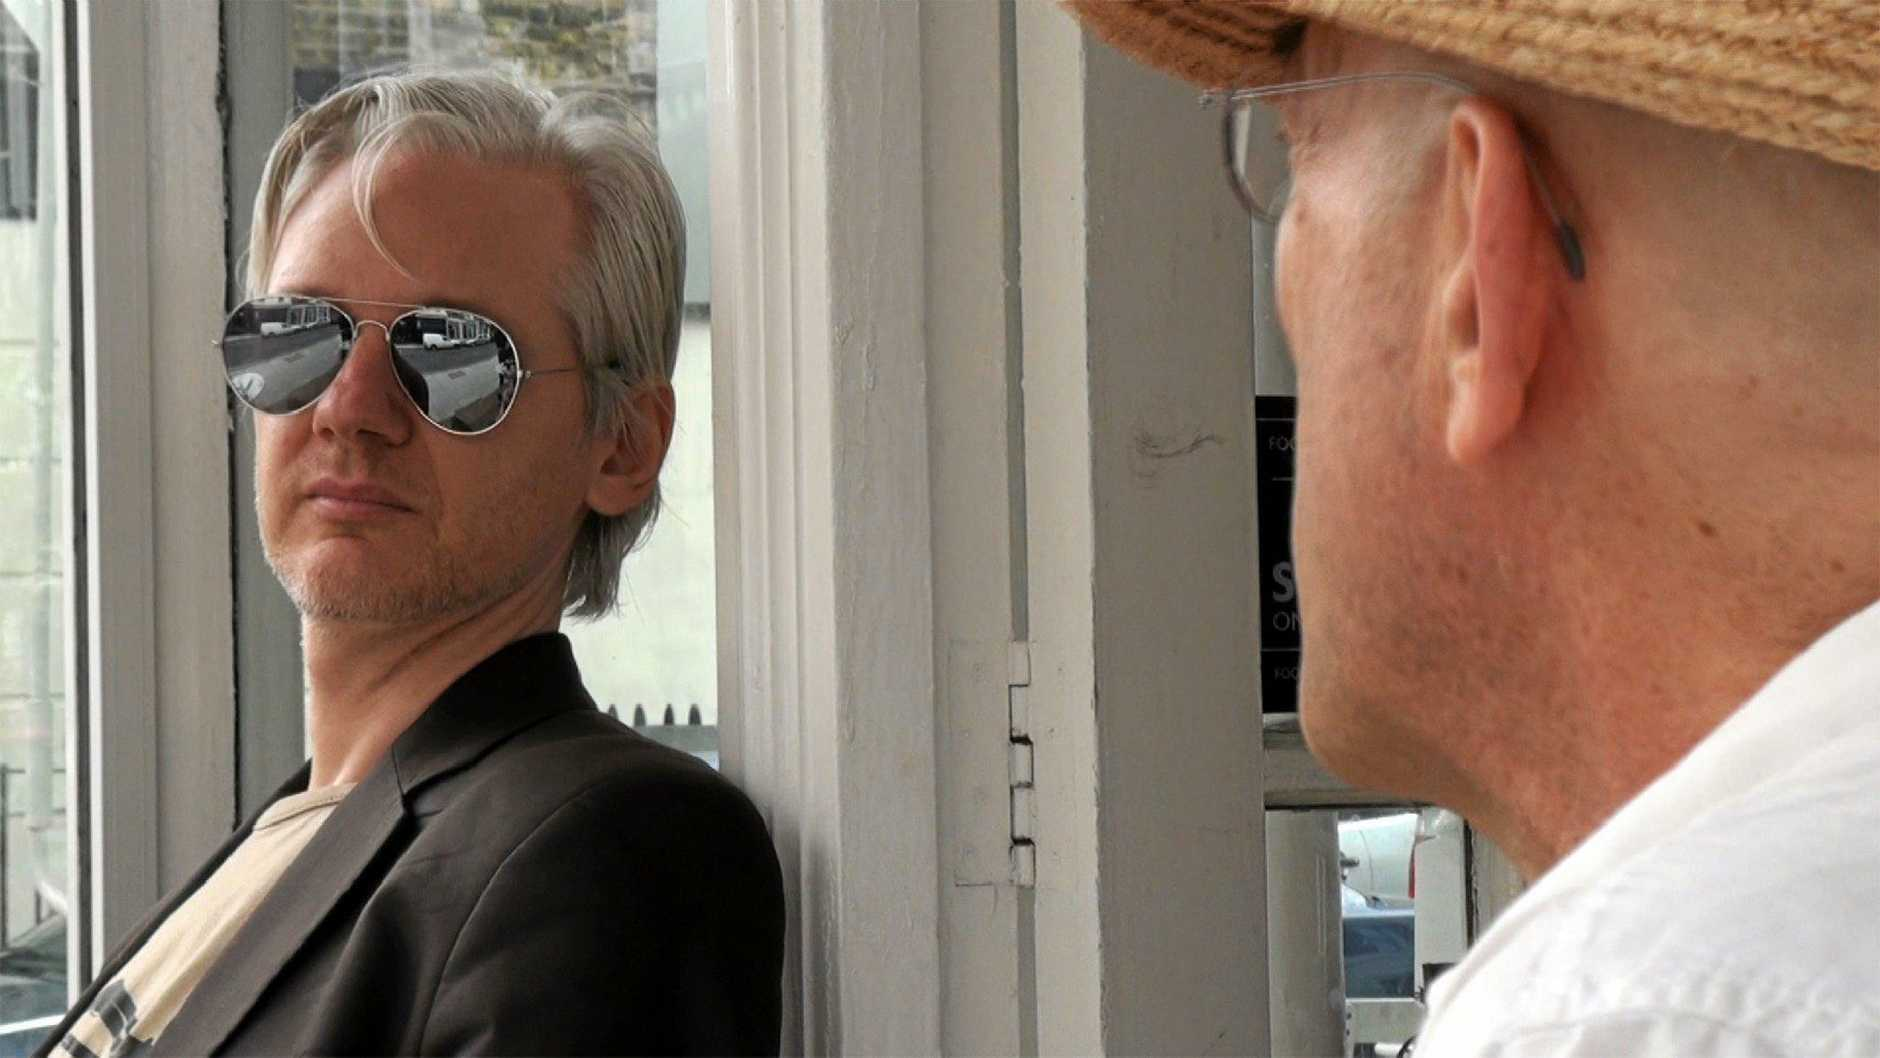 FOR REVIEW AND PREVIEW PURPOSES ONLY. Julian Assange in a scene from the movie We Steal Secrets: The Story of WikiLeaks. Supplied by UPI media website. Please credit photo to Focus World.